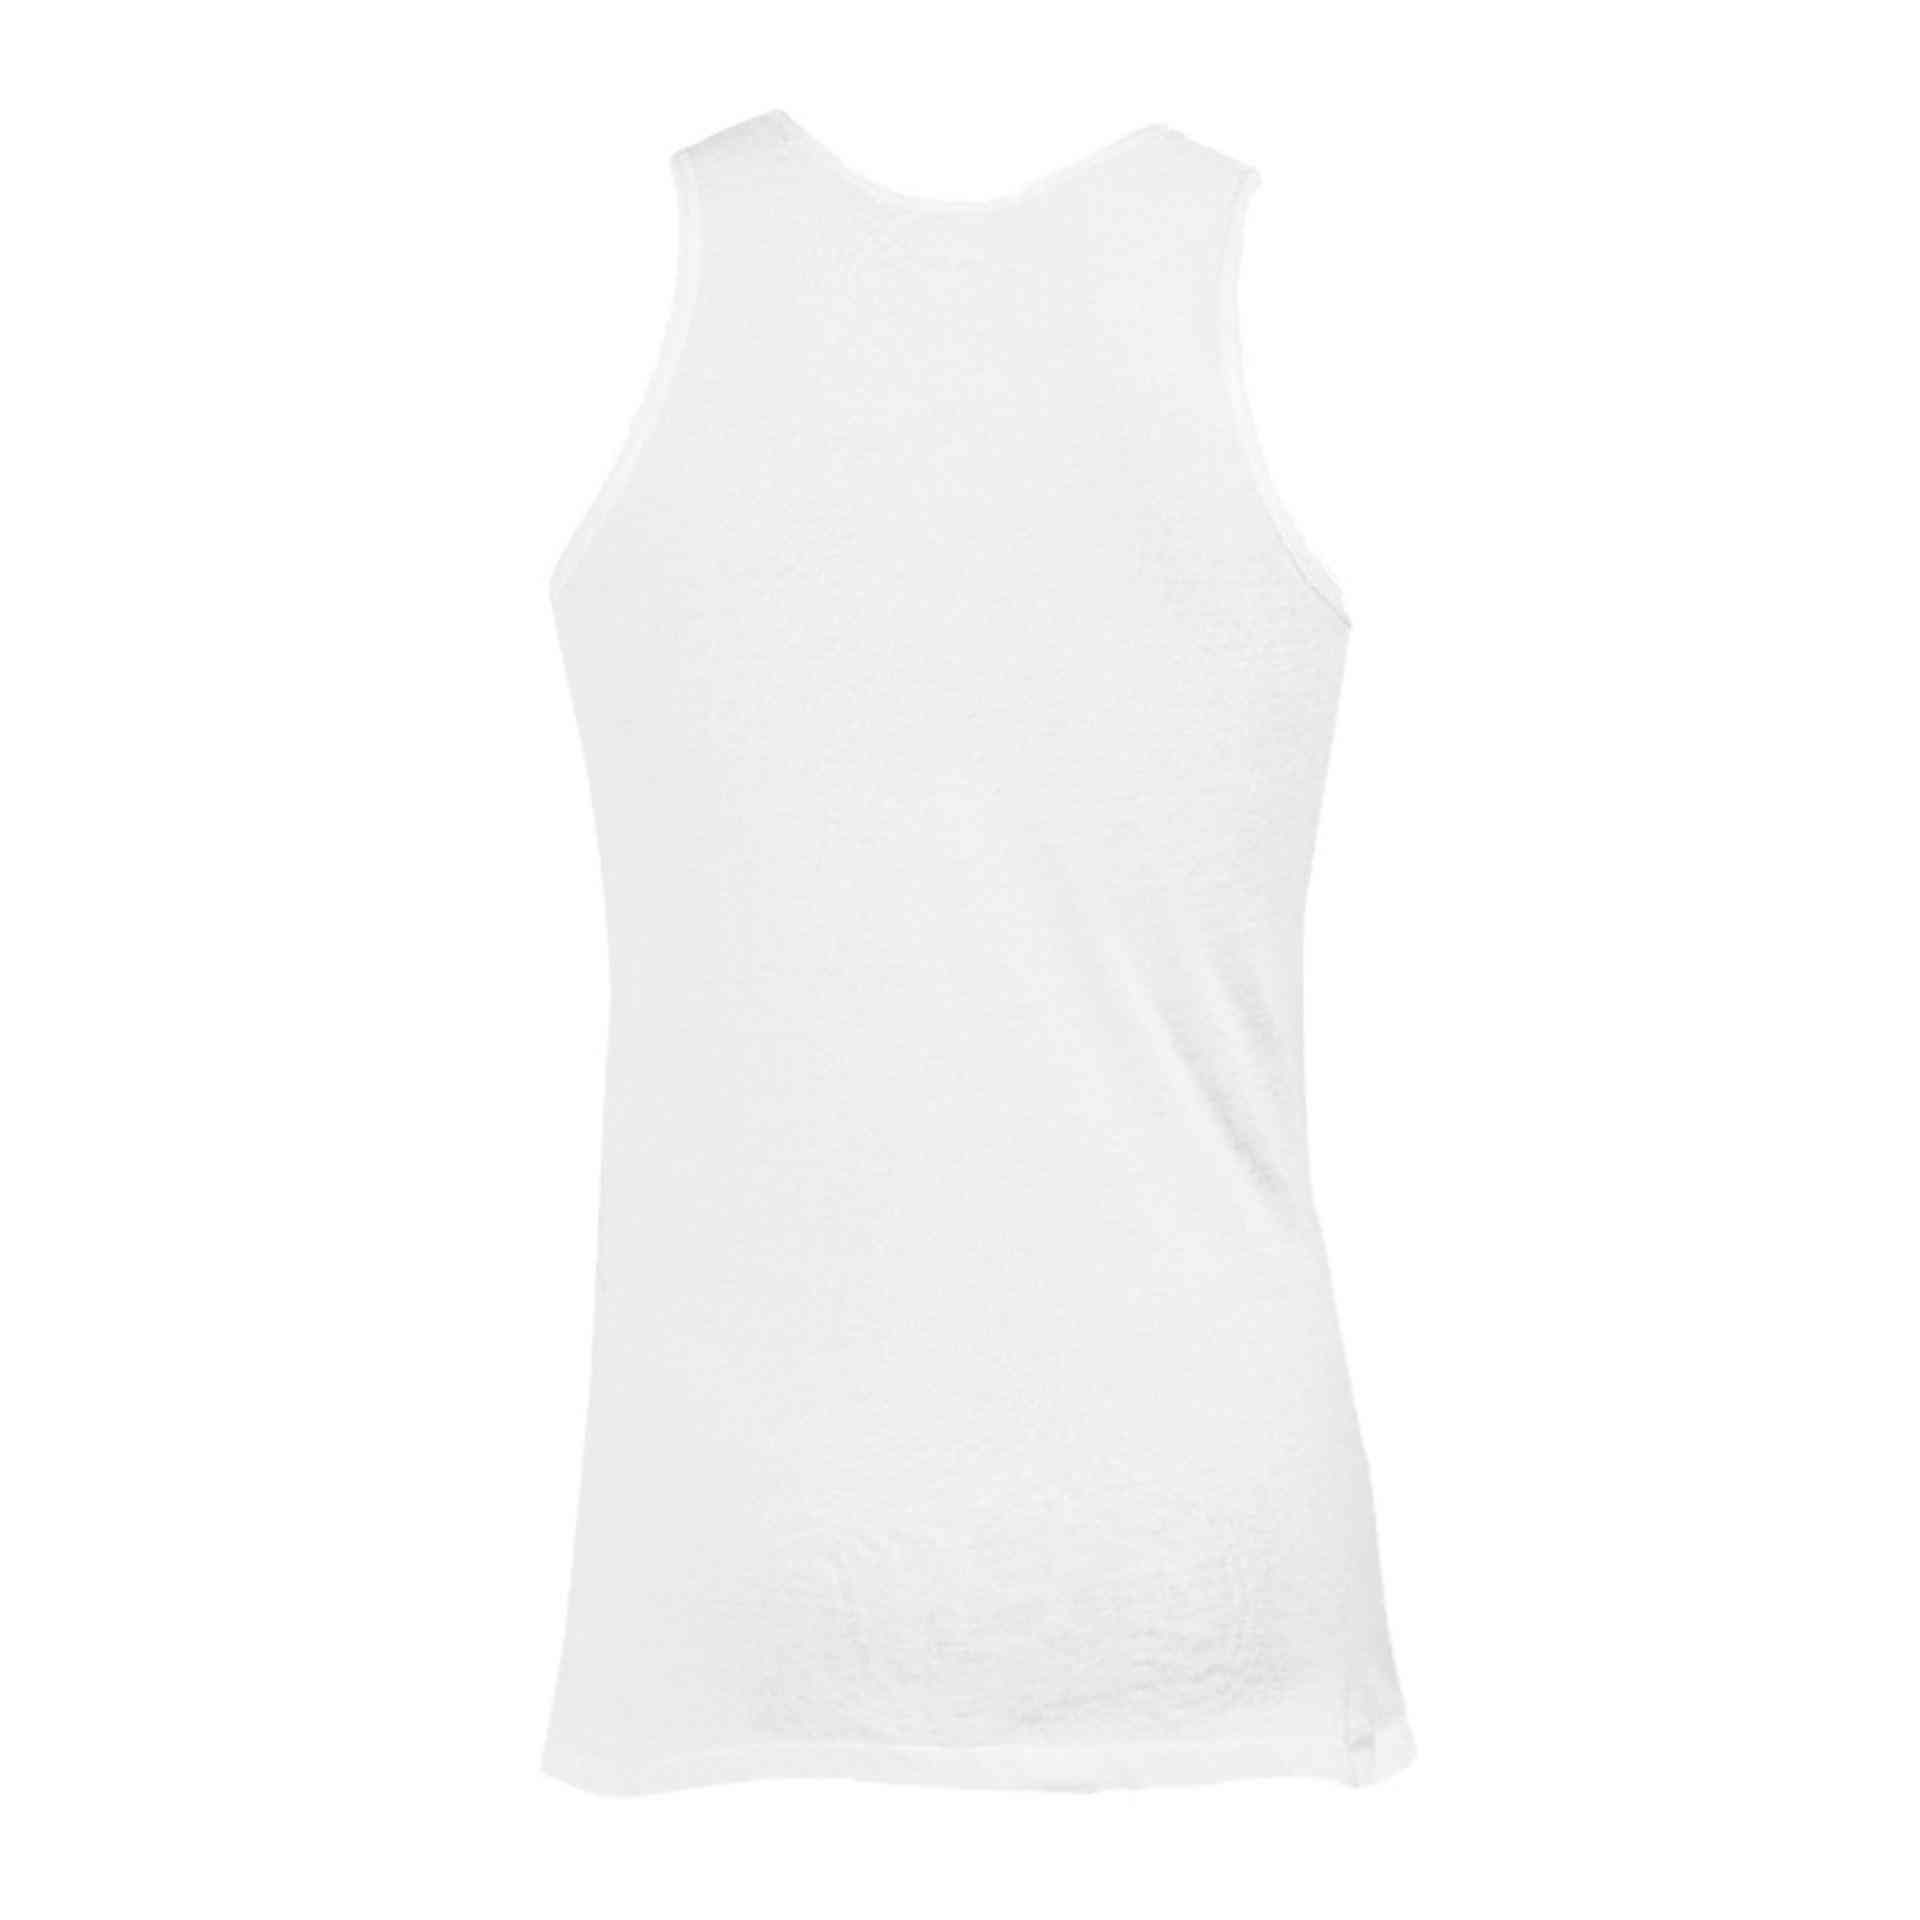 Daisy Luxury Pure Cotton Vest for Men - White